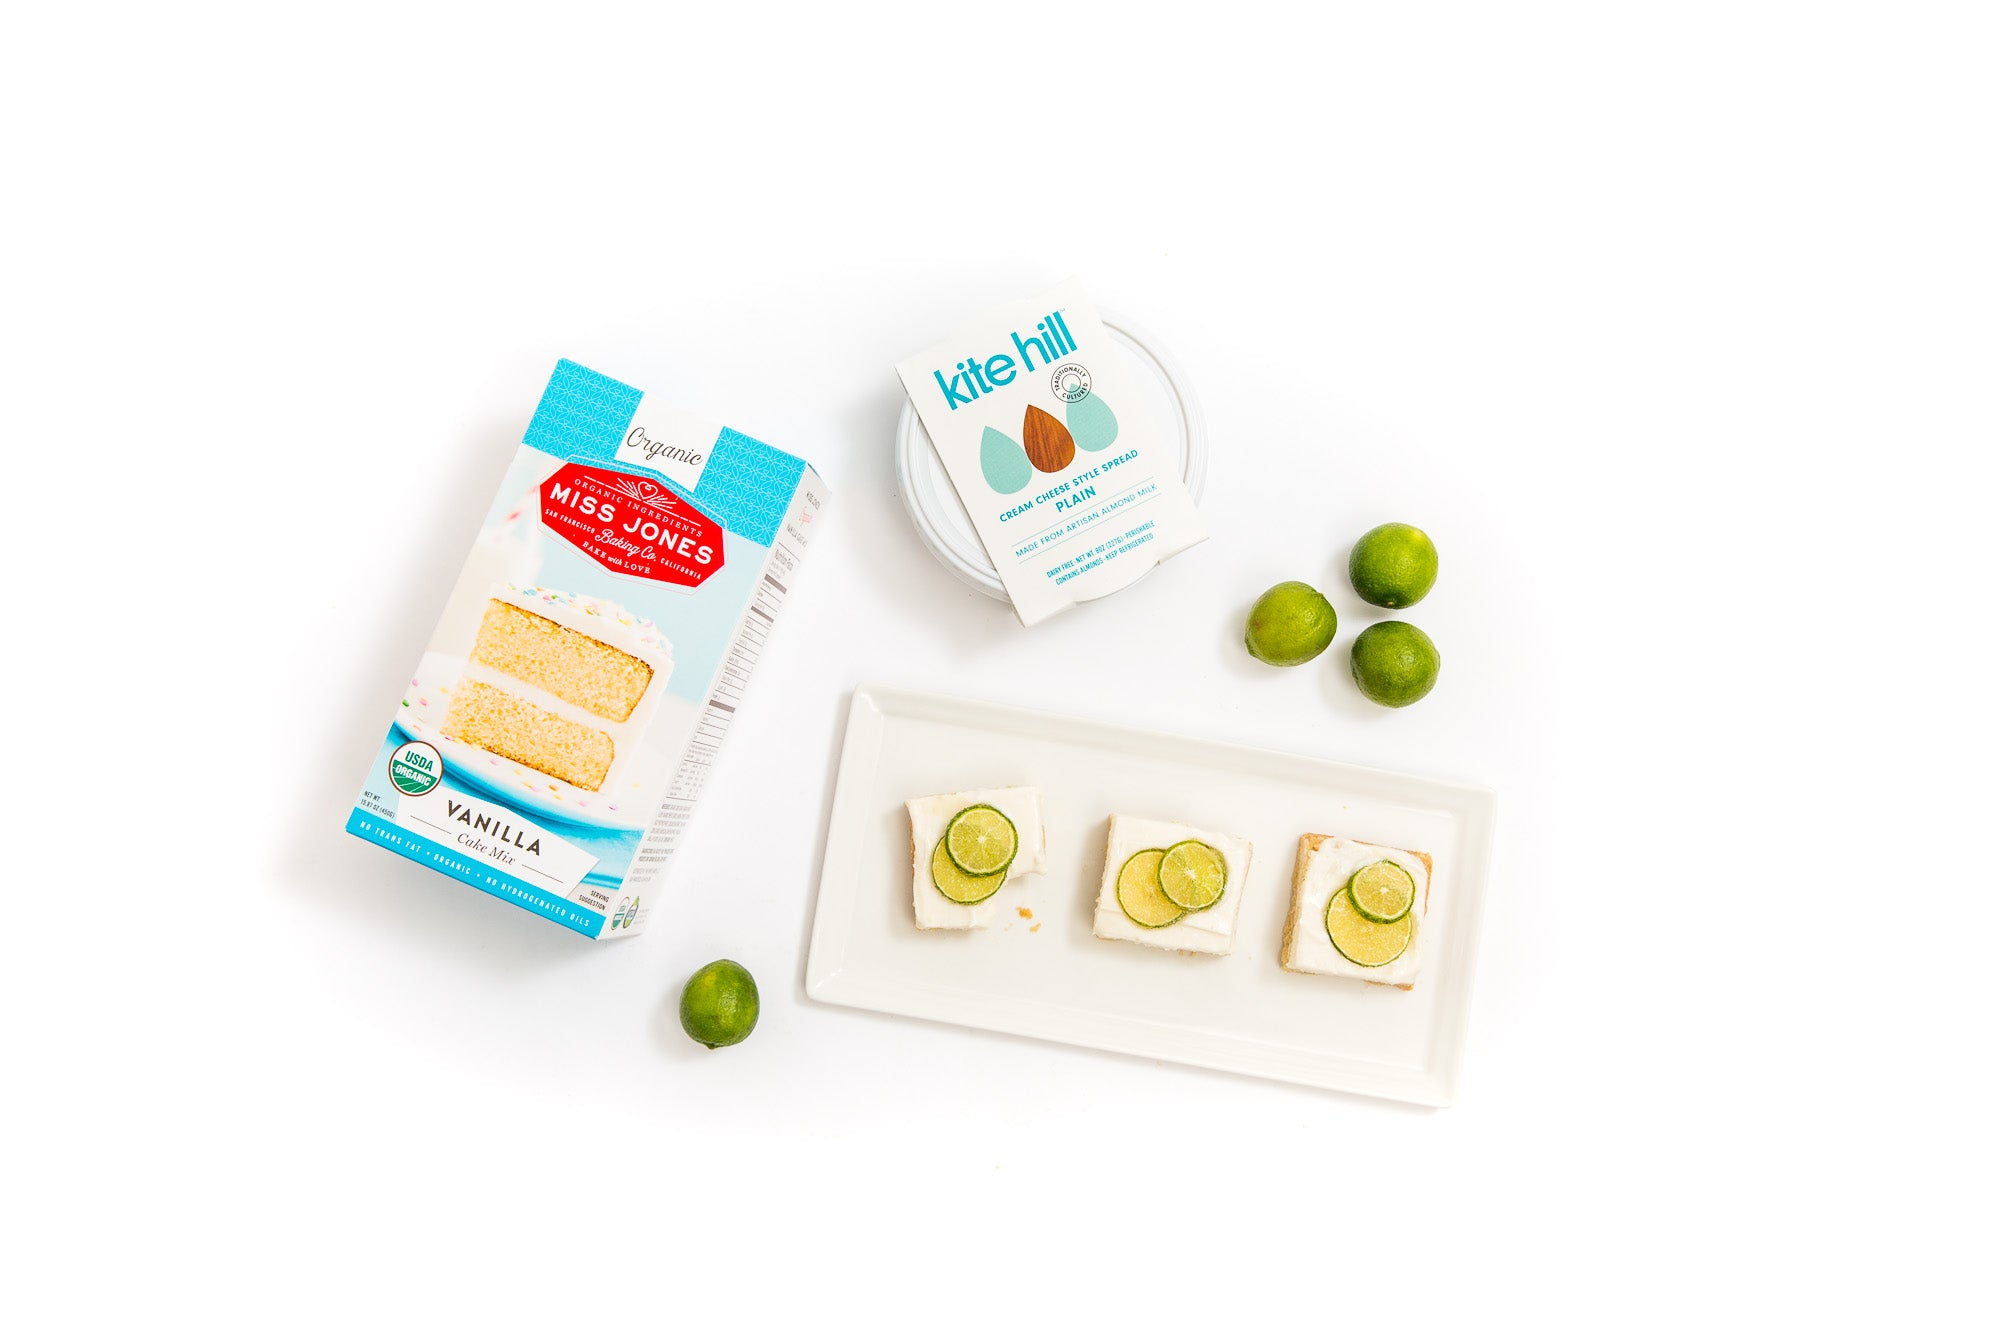 Image from above of a plate with three Miss Jones Baking Co Key Lime Margarita Bars, four limes, a box of Miss Jones Vanilla Cake Mix and a tub of Kite Hill Cream Cheese spread